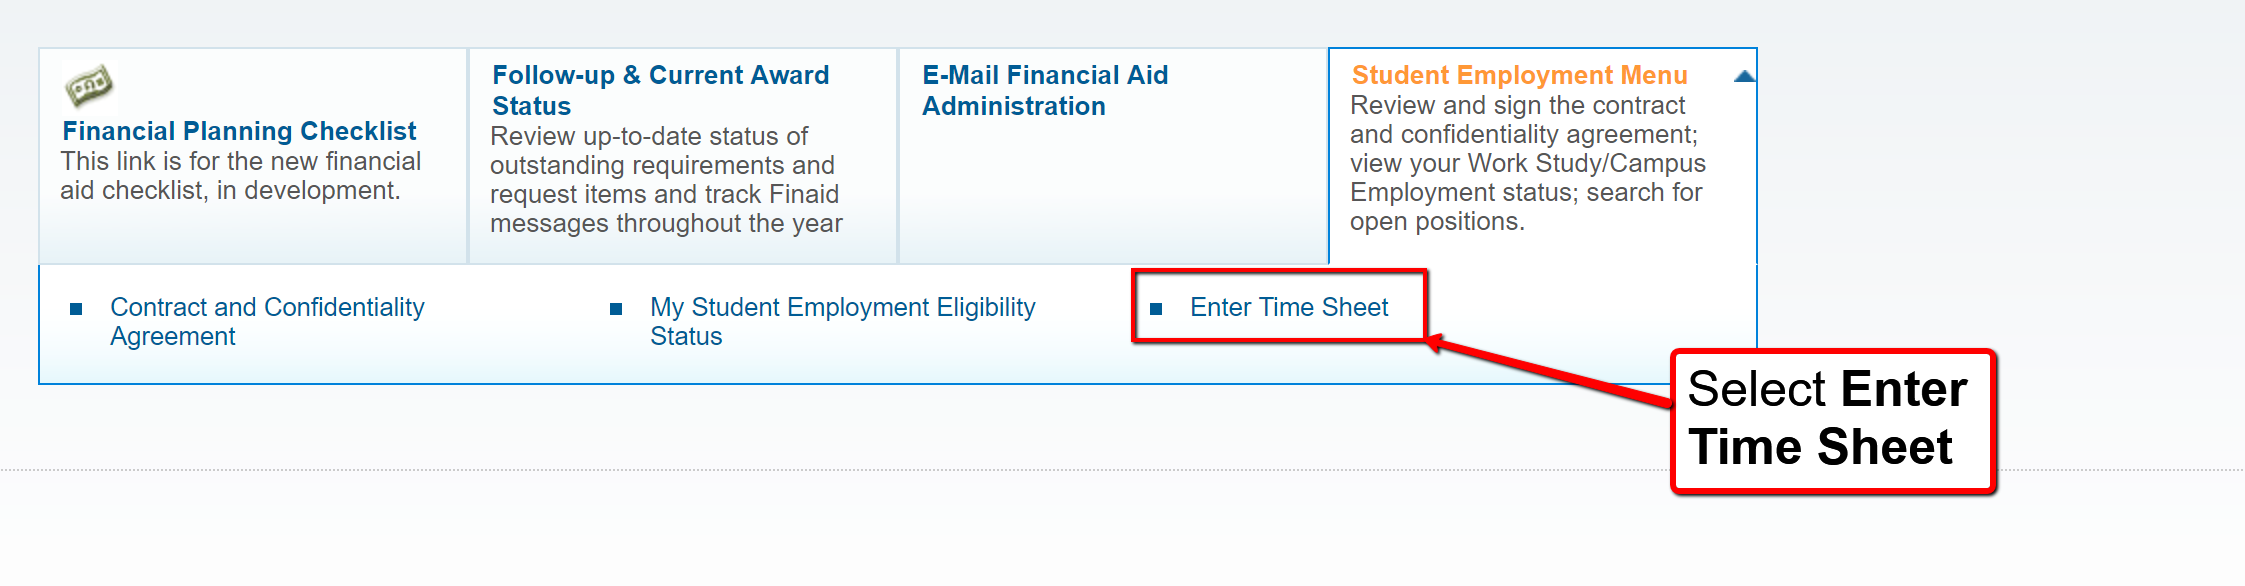 image depicting the option to enter timesheet